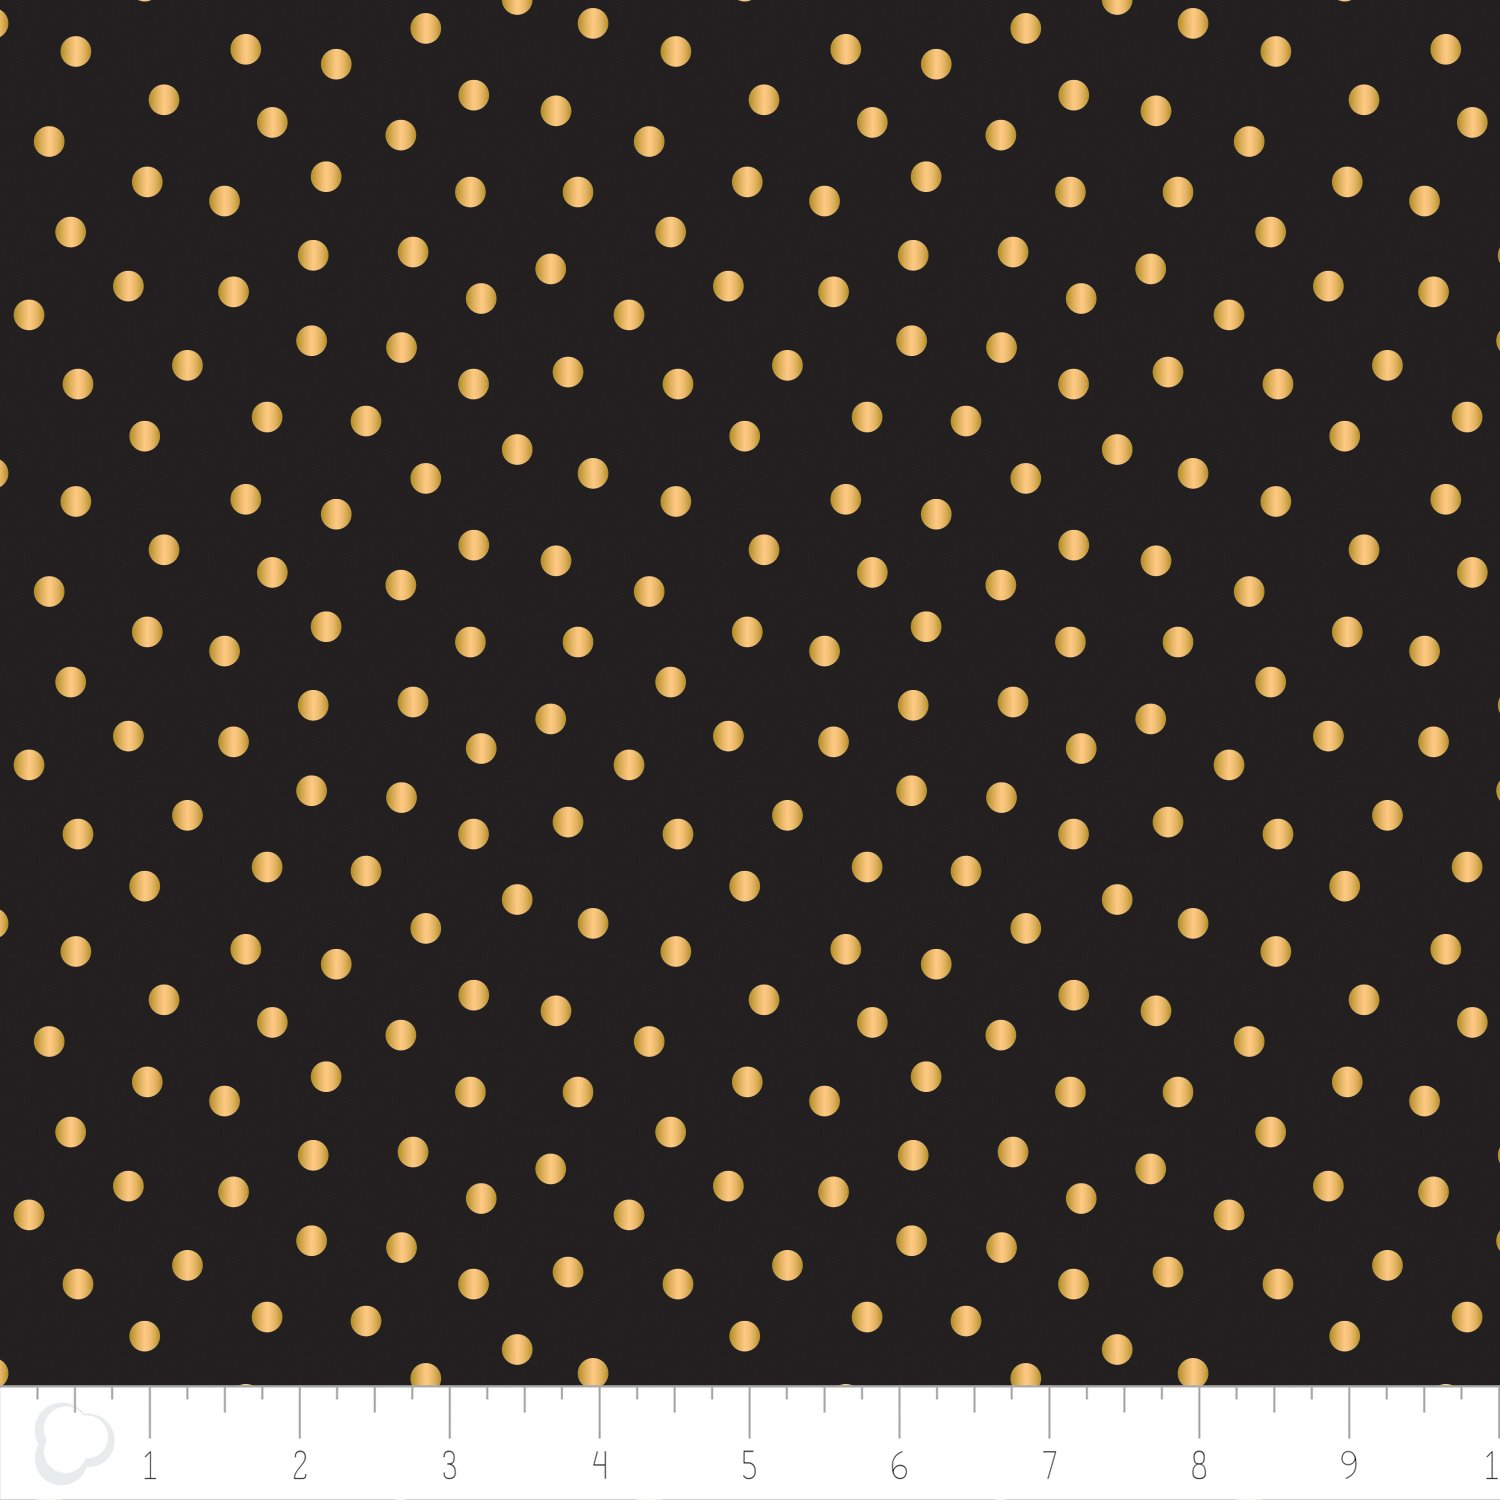 Mixology Luxe - Dotted - Black/Metallic Gold